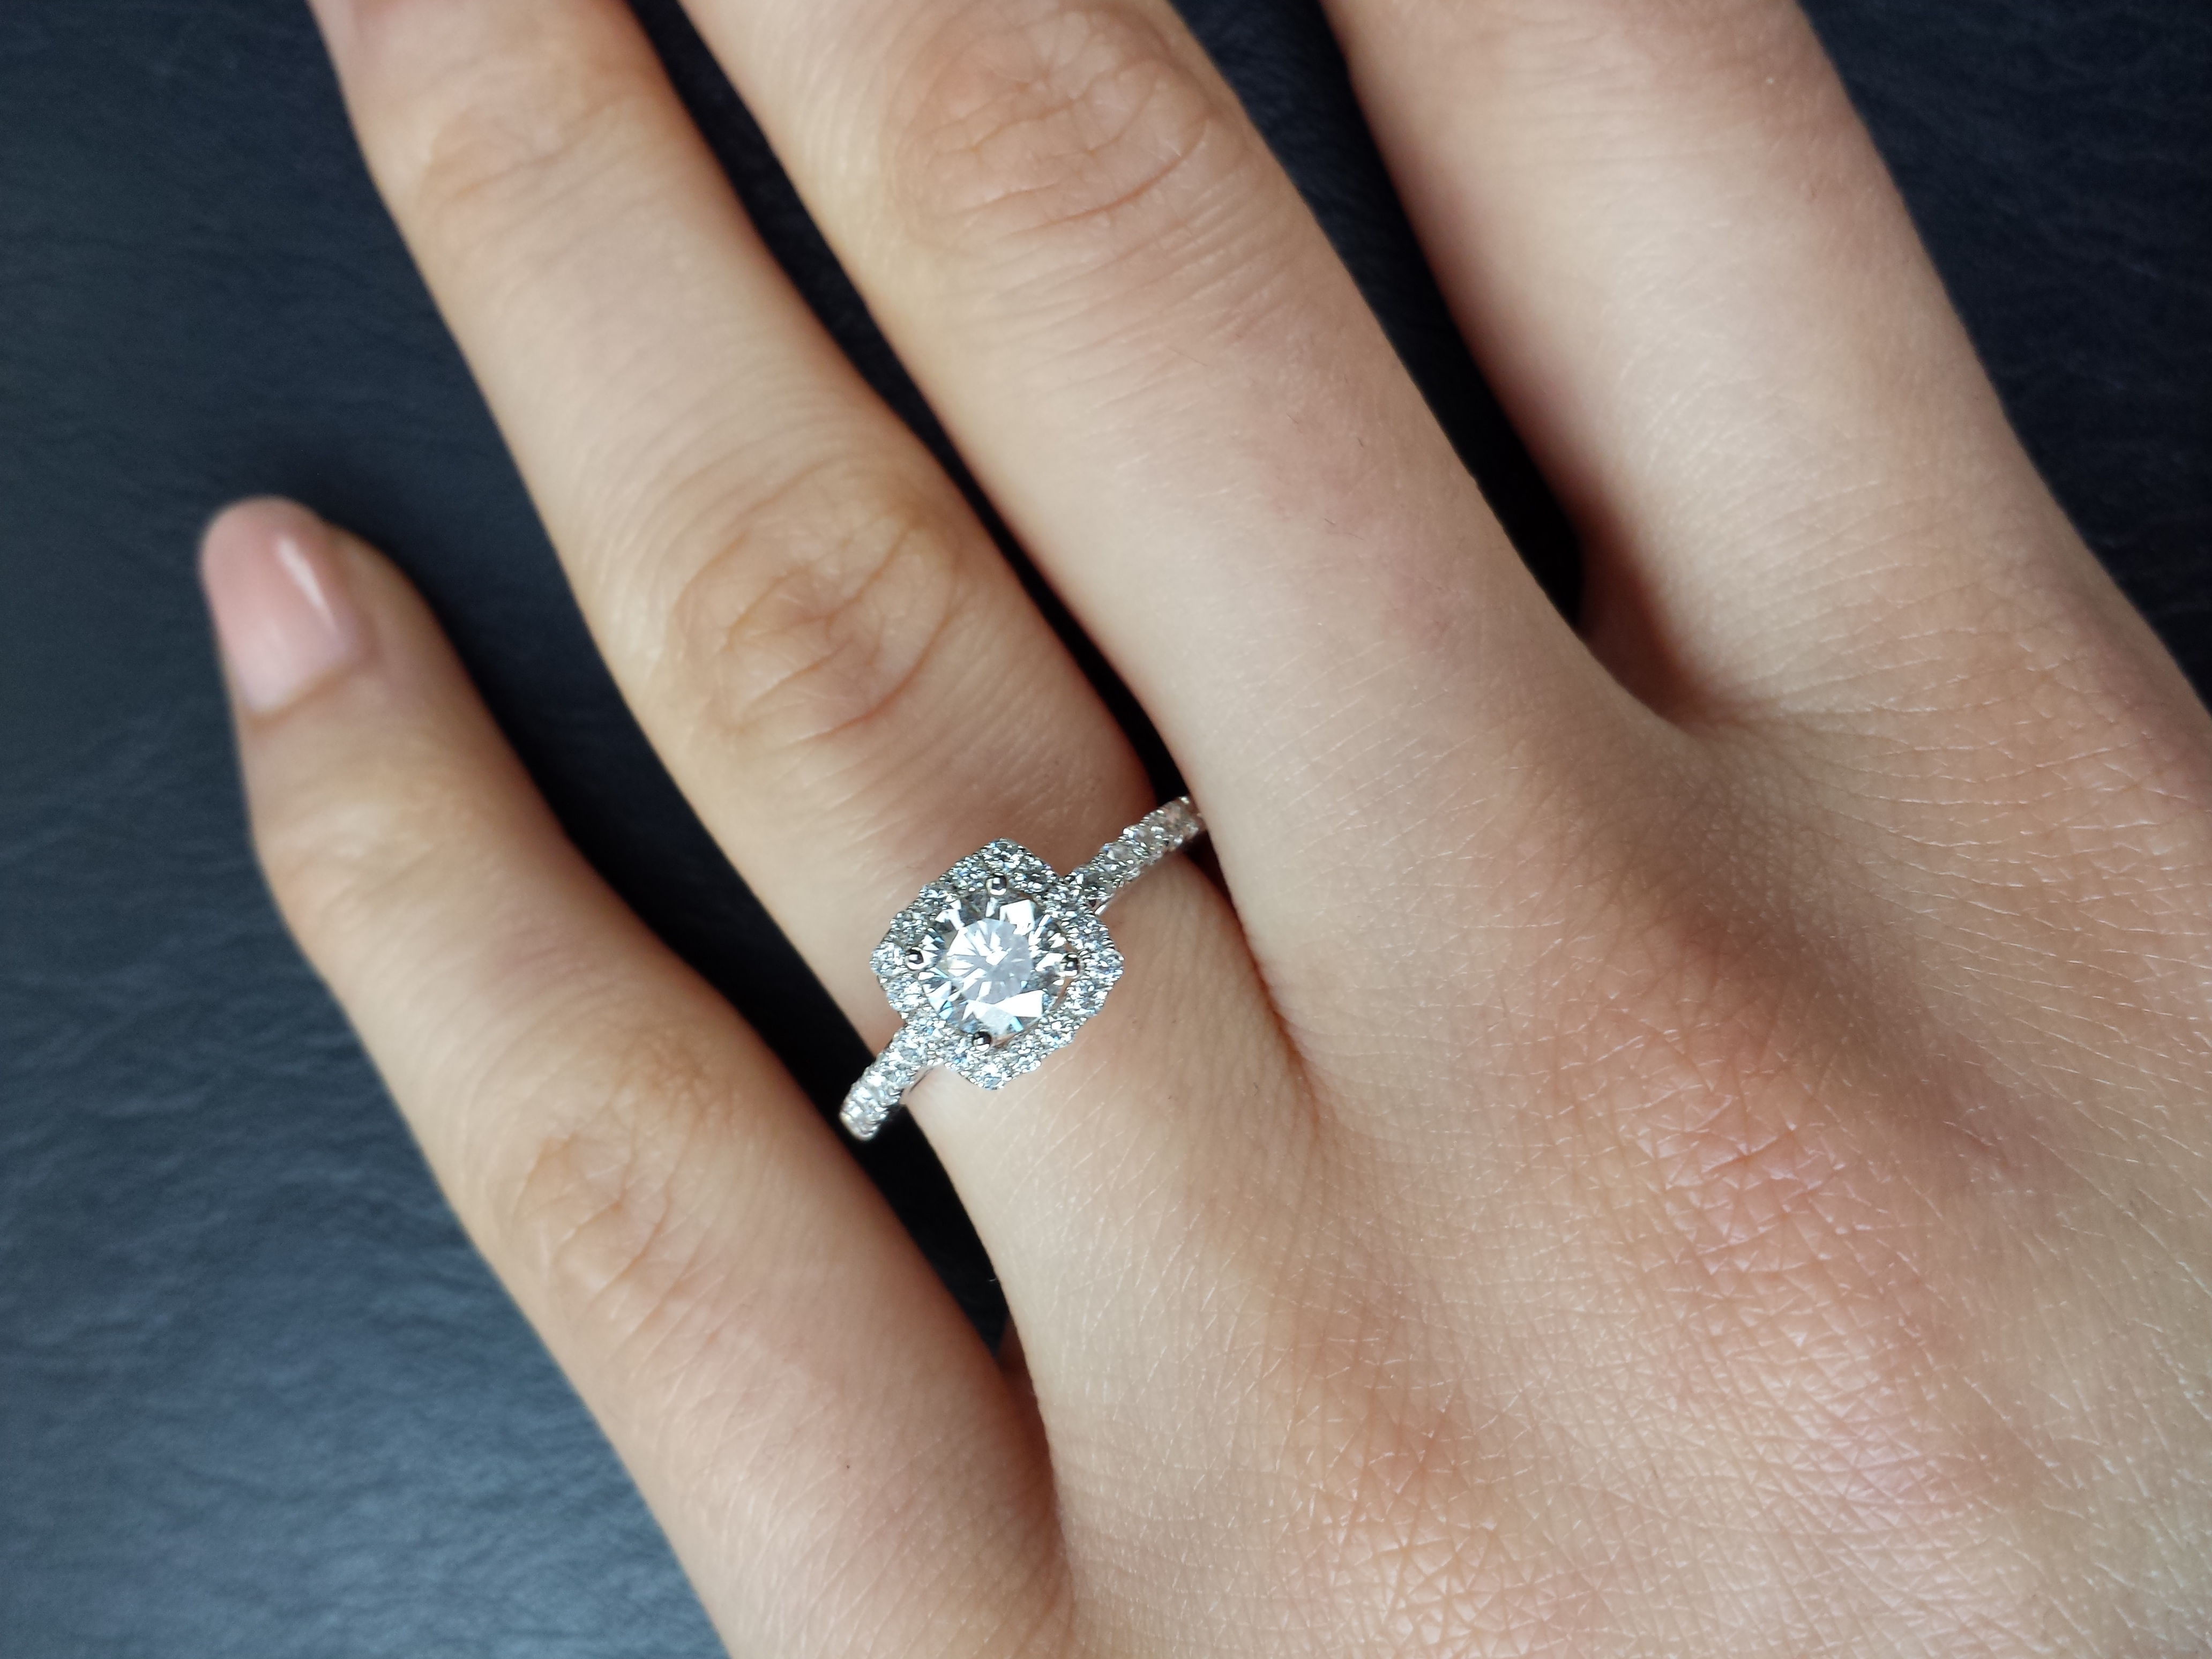 princess cut halo engagement ring zales diamond wedding rings It s a Zales Celebration Fire diamond round with a cushion halo I didn t like it because I had always wanted princess cut and felt stupid for picking it